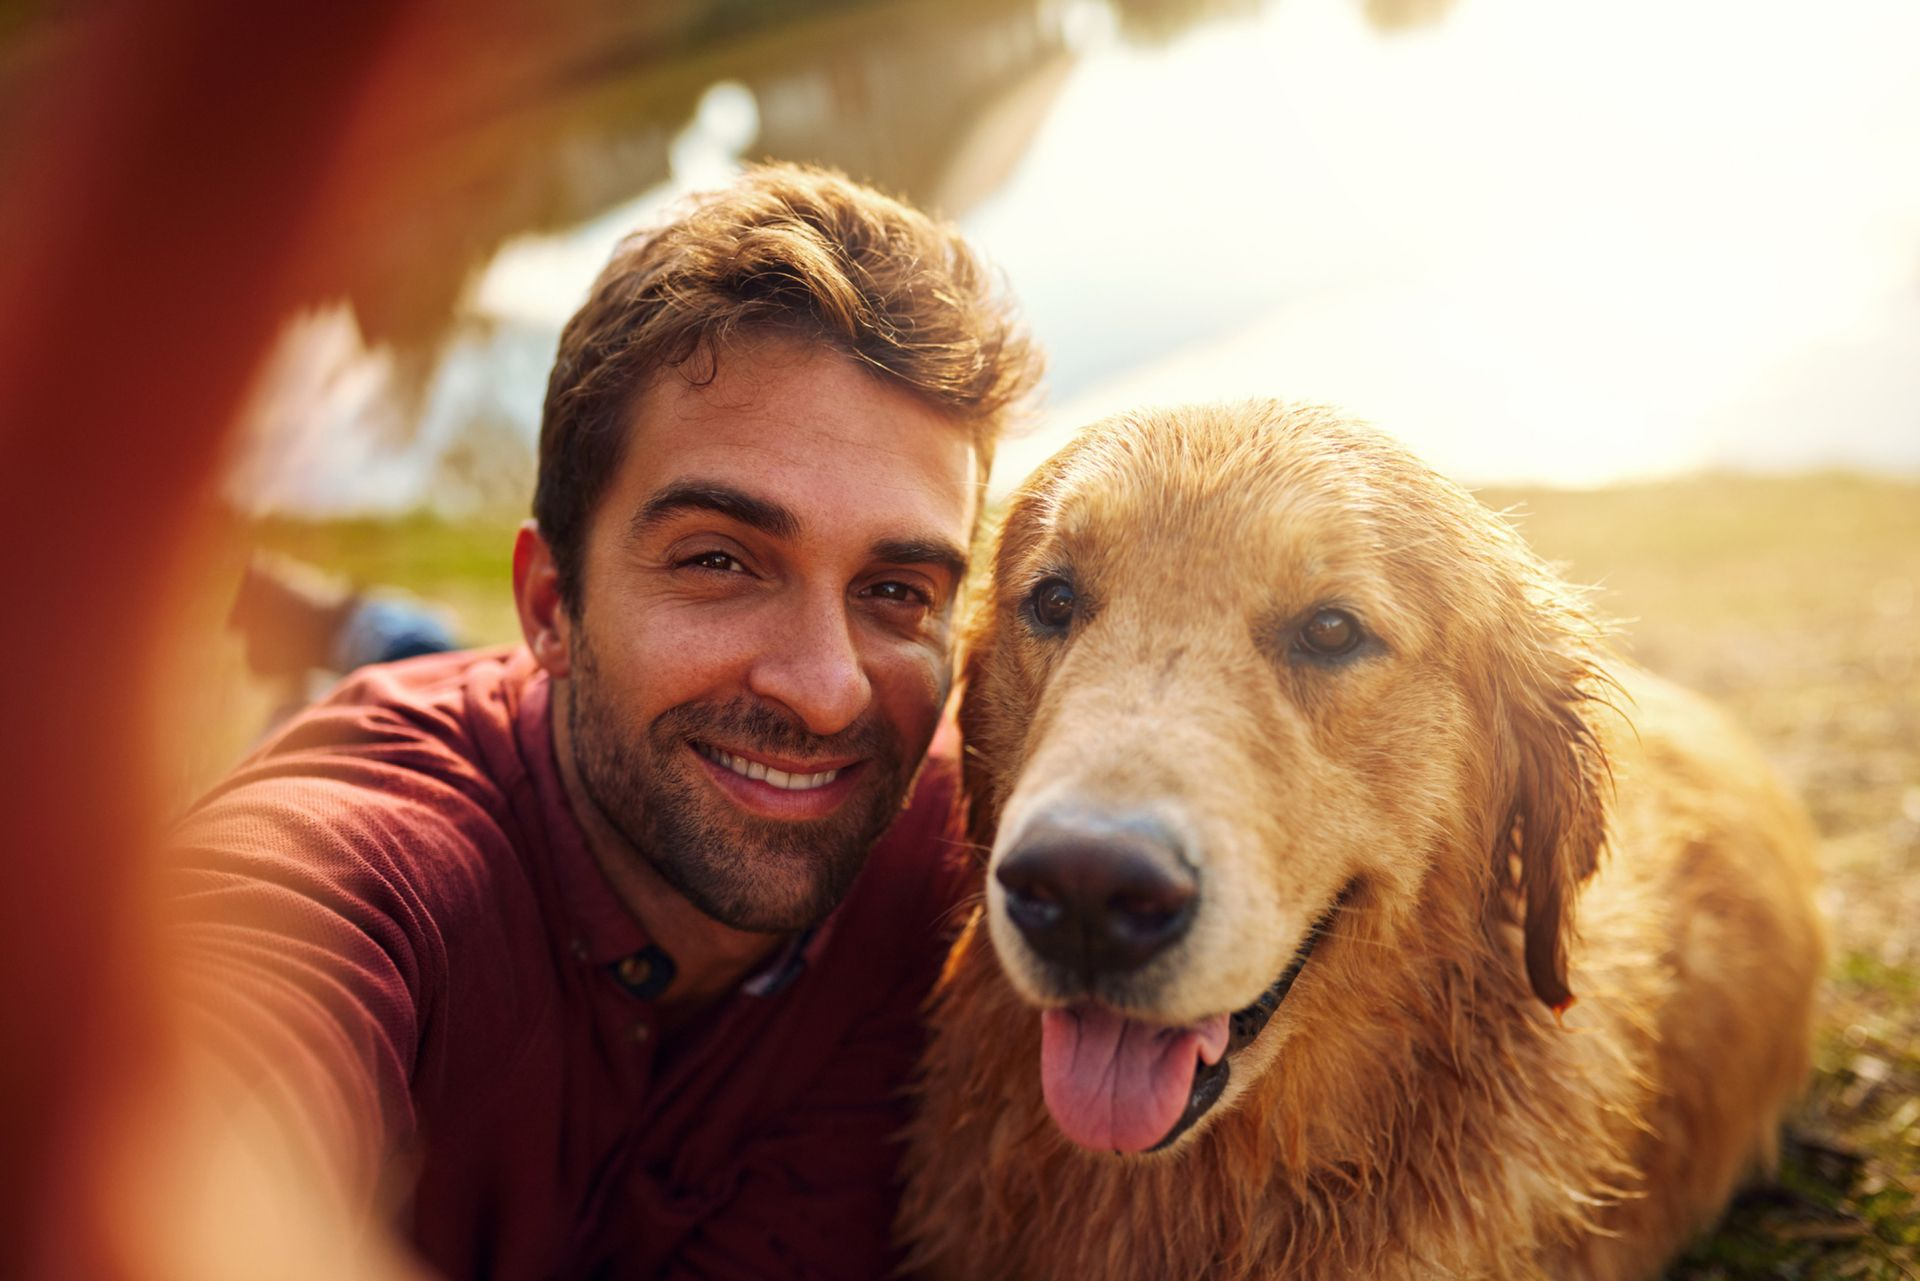 Cropped shot of a handsome young man and his dog taking selfies by a lake in the park